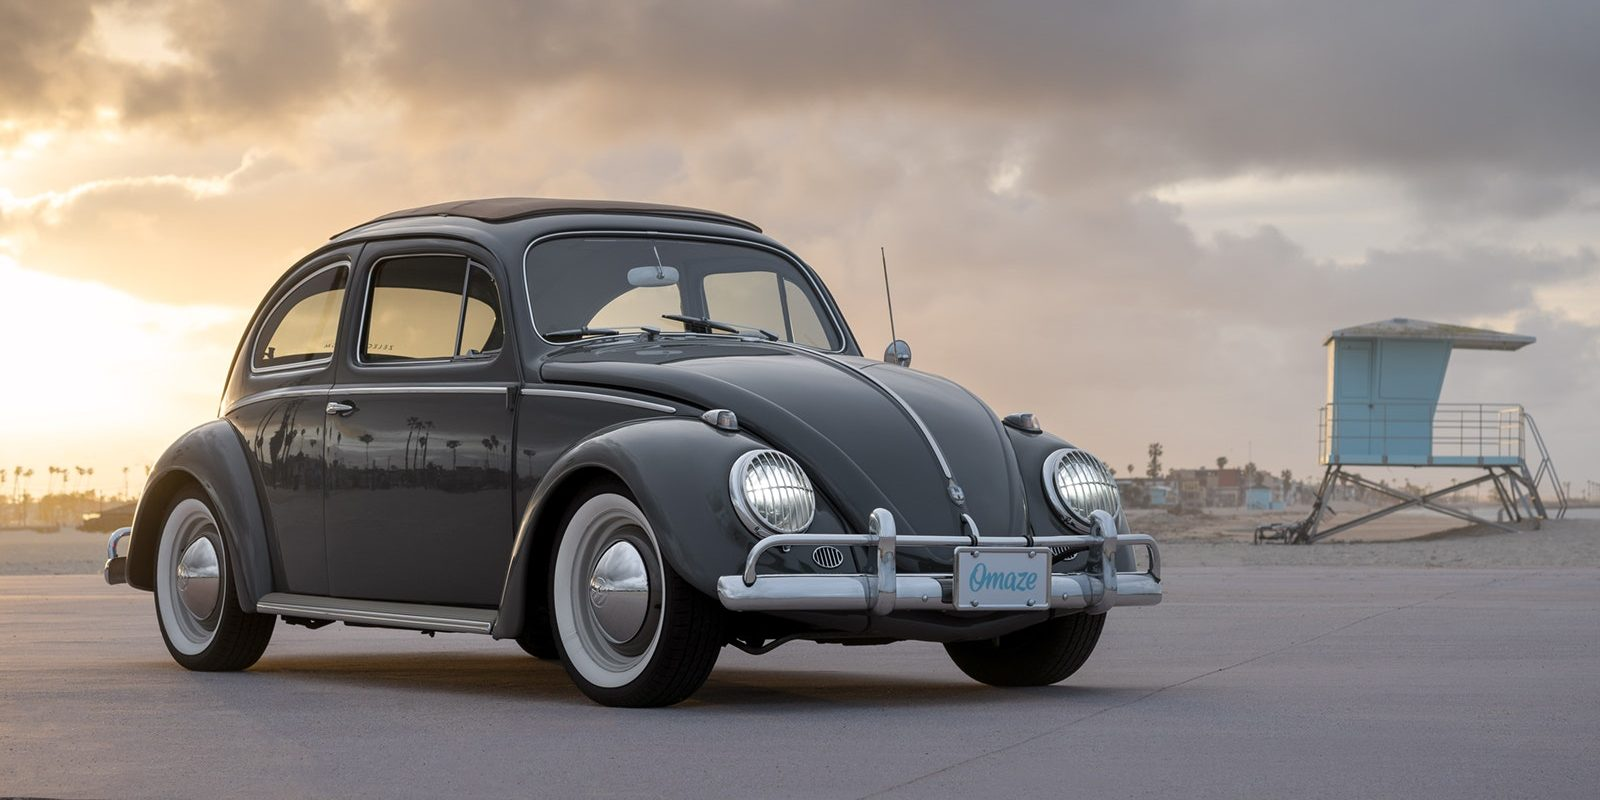 You Can Win This Tesla Ed Old School Vw Bug